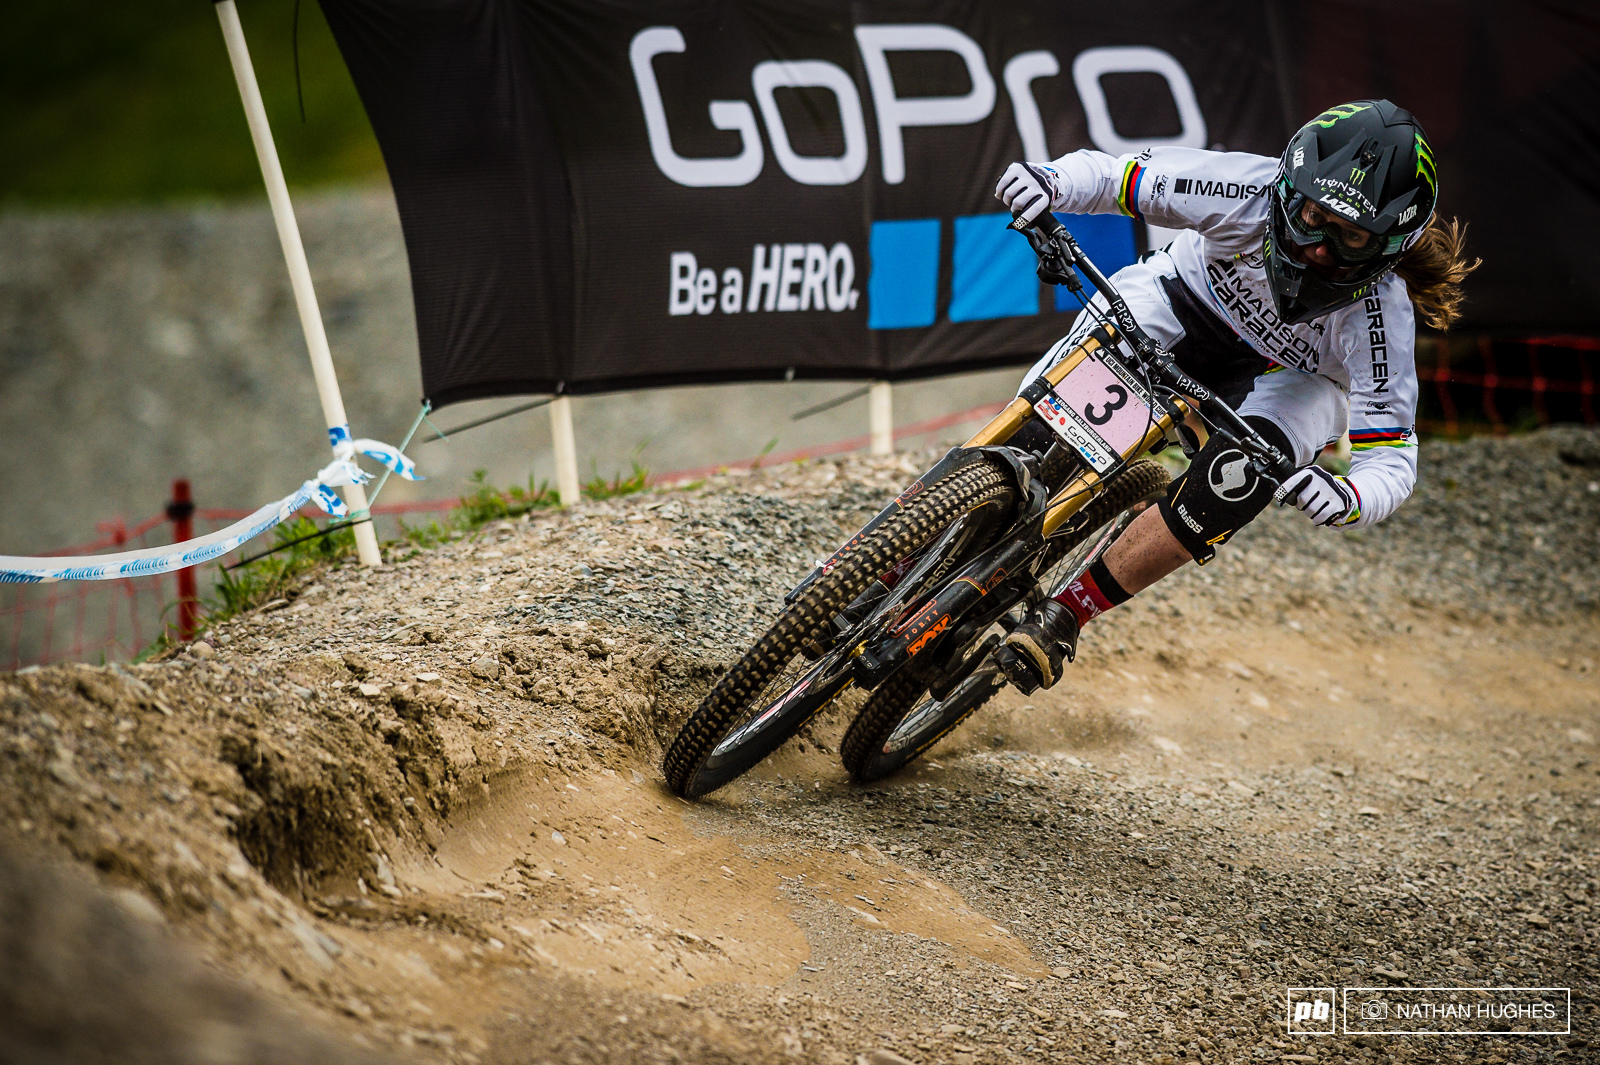 Poor Manon Carpenter will already be trying to etch Leogang 2015 from her memory. Mistakes on track were followed by getting blown through the tape for a DQ. Next time